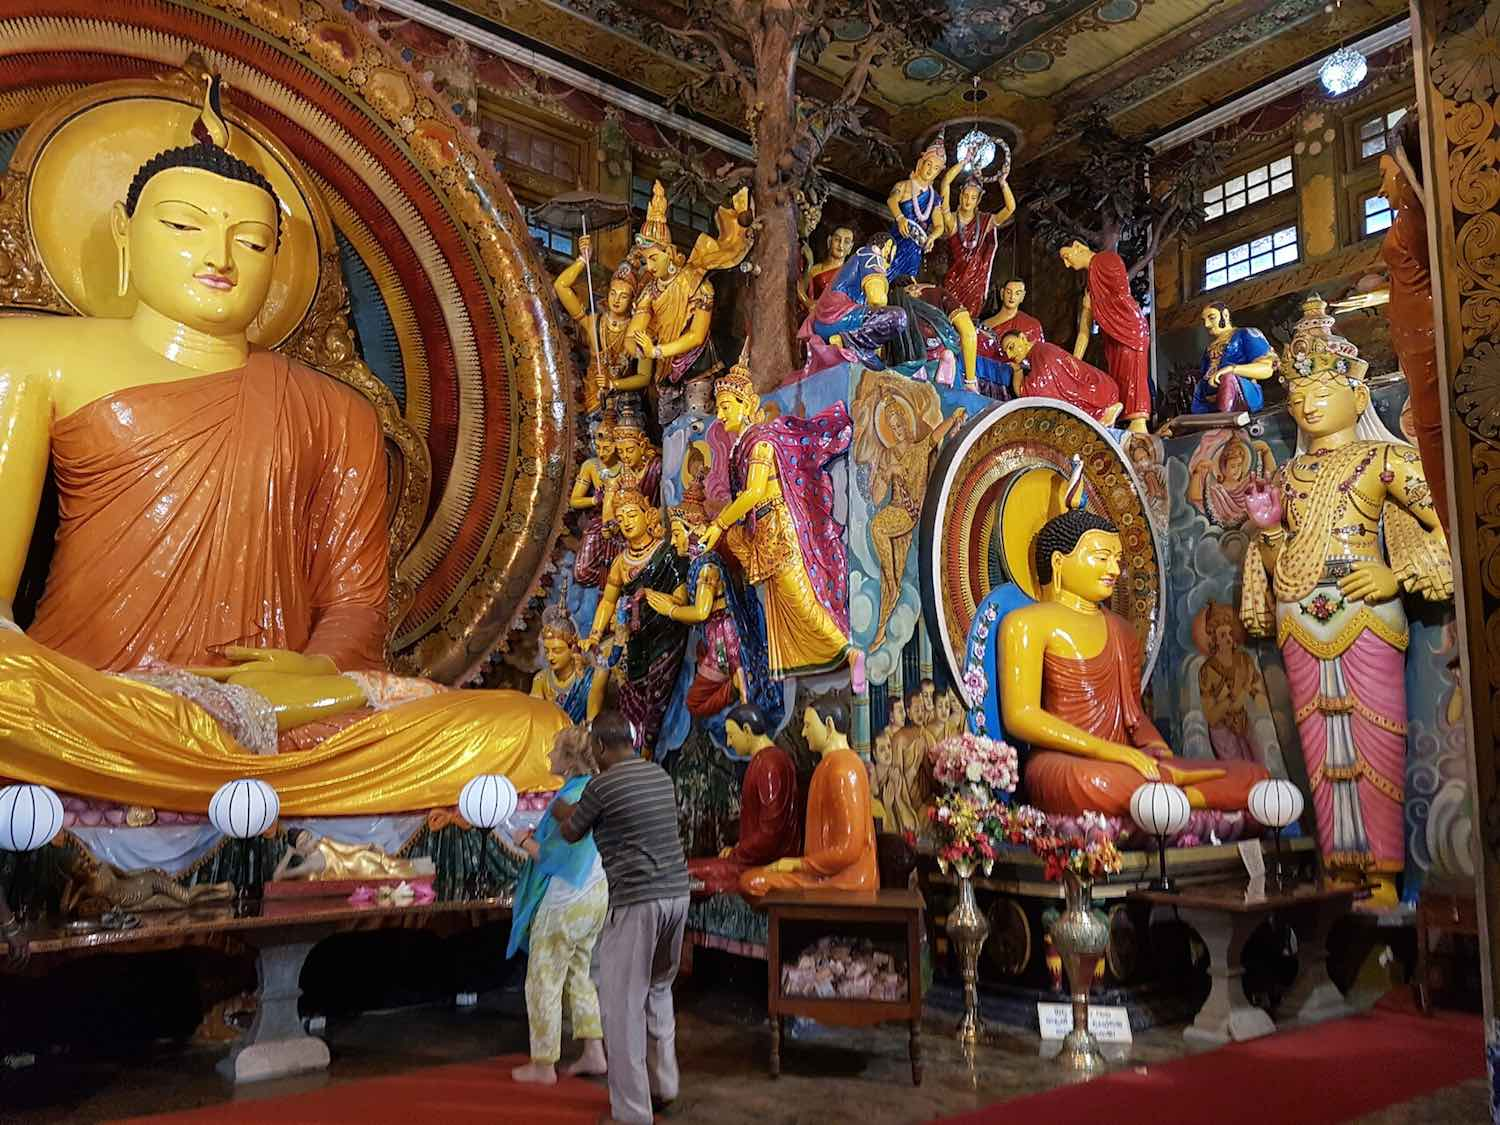 sri-lanka-temple-holiday-review-feedback-invite-to-paradise-quentin-kate-hulm.jpg